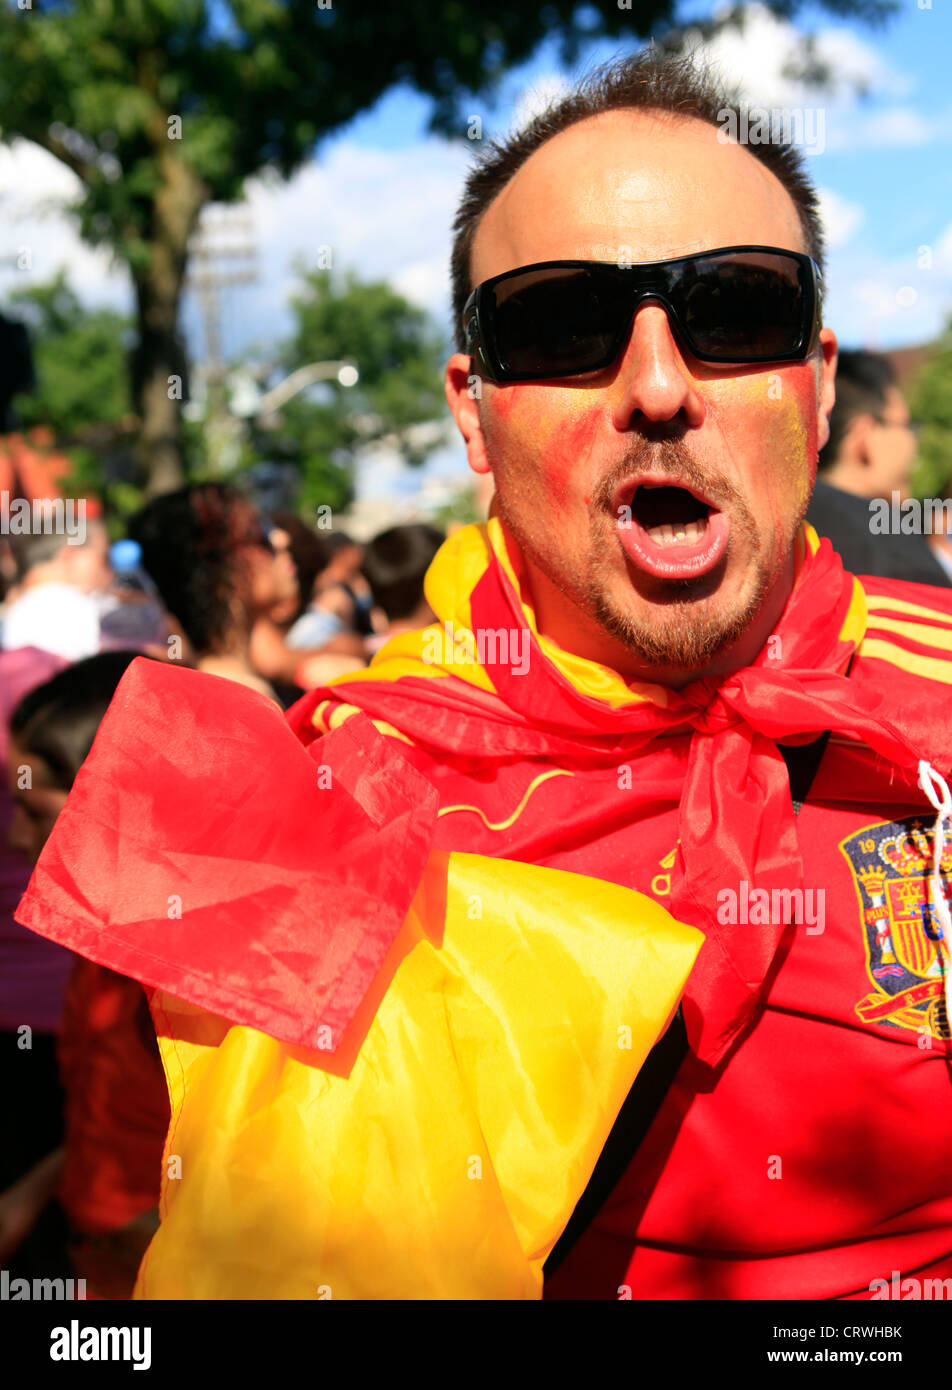 Soccer fans took to the streets of Toronto in celebration on Sunday after Spain's shutout win over Italy in - Stock Image